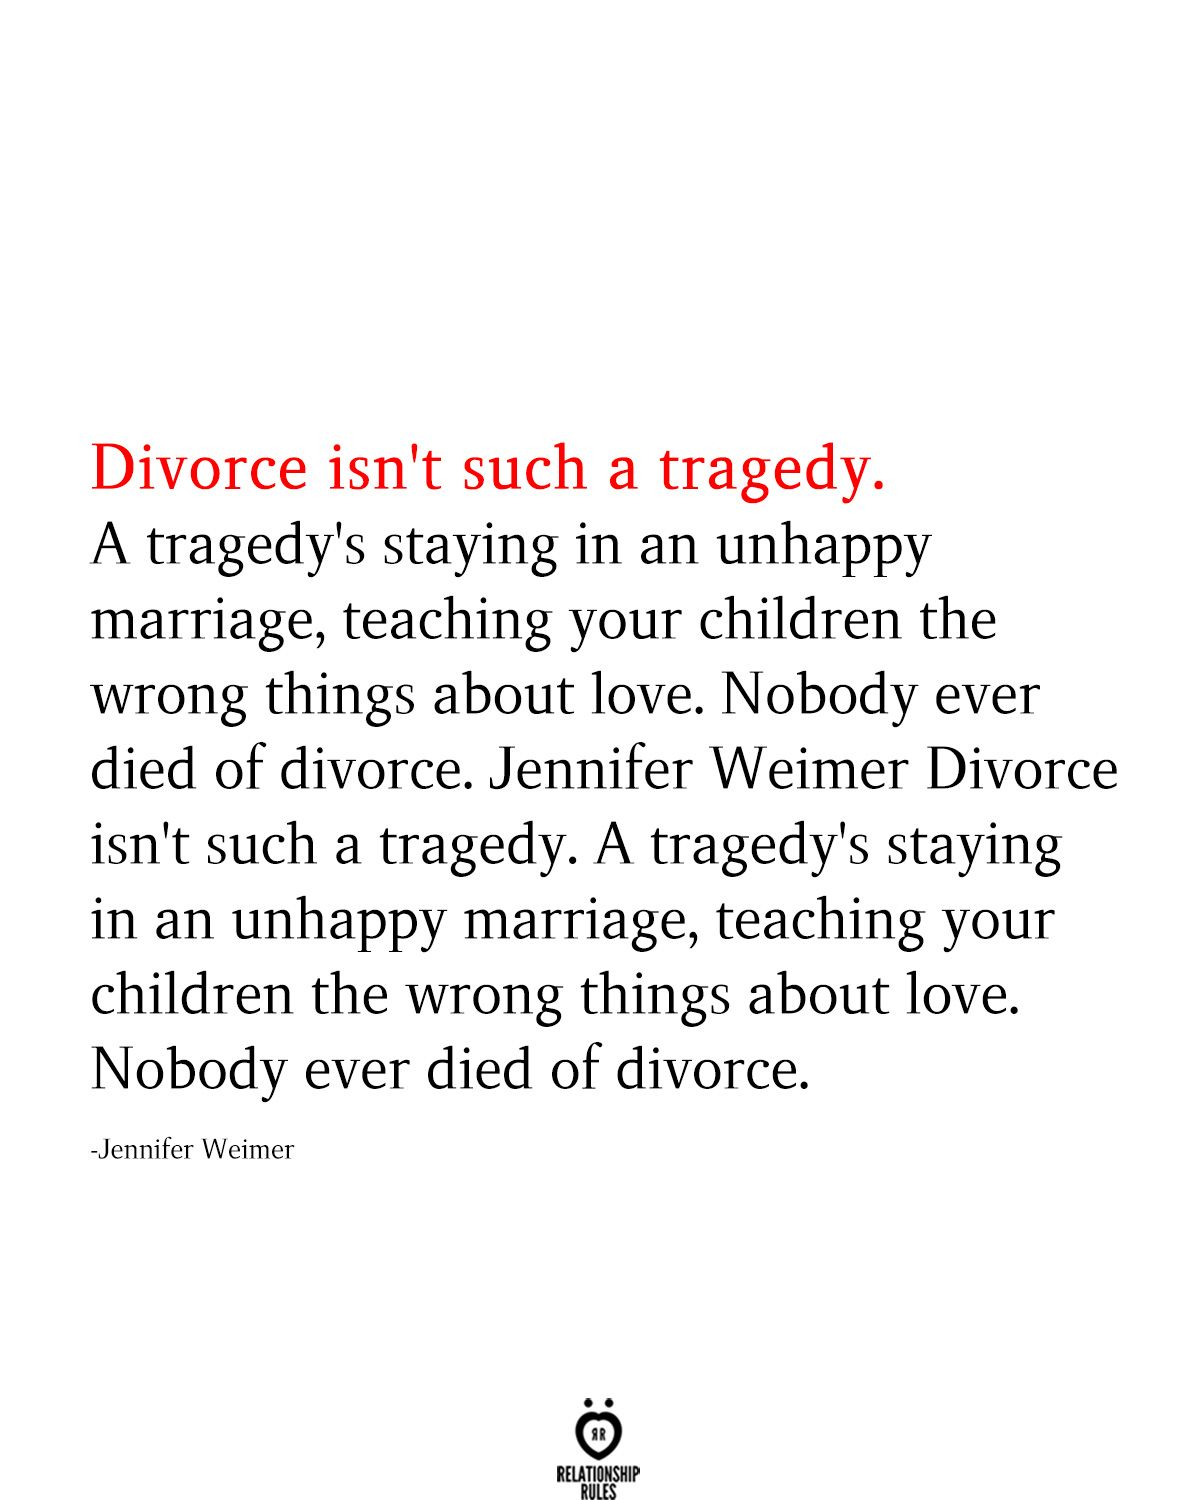 Divorce Isn't Such A Tragedy. A Tragedy's Staying In An Unhappy Marriage